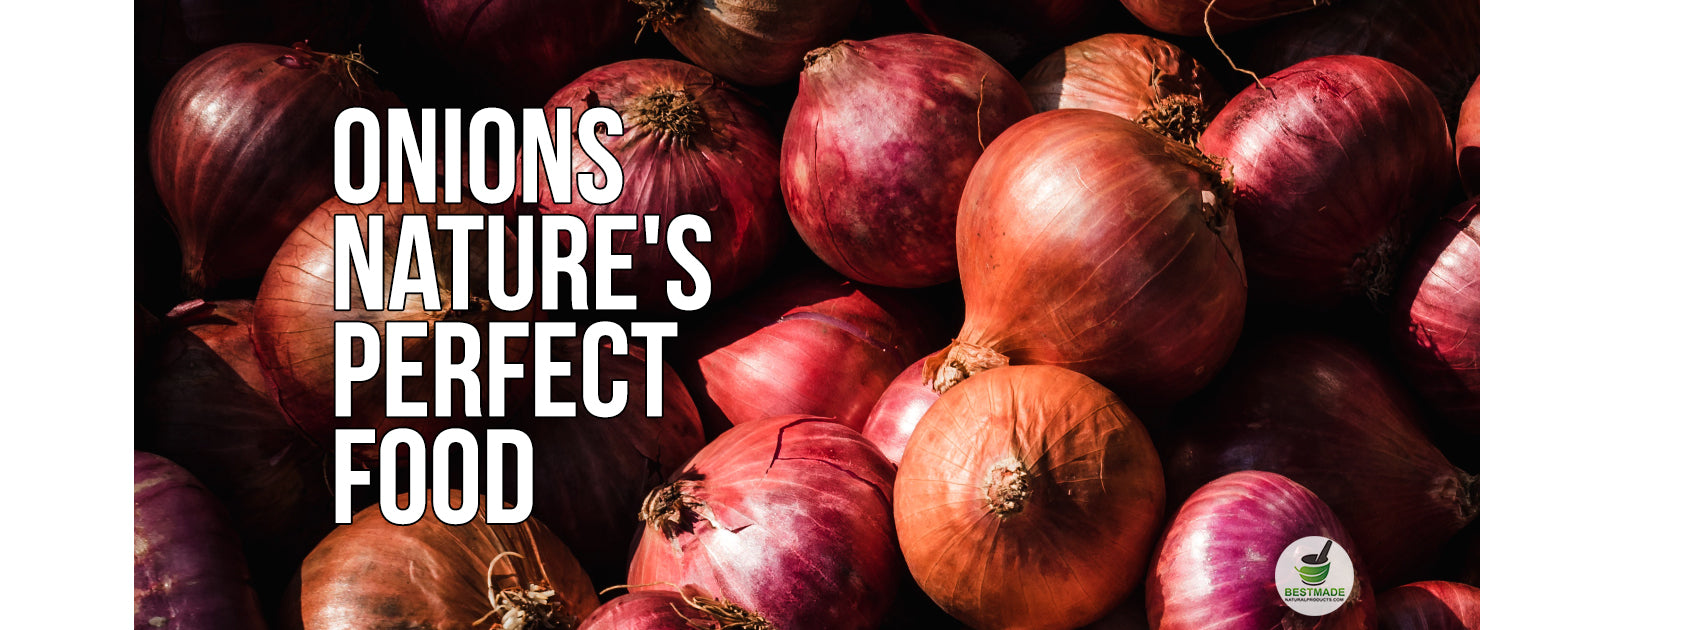 Nature's Perfect Food: Onions